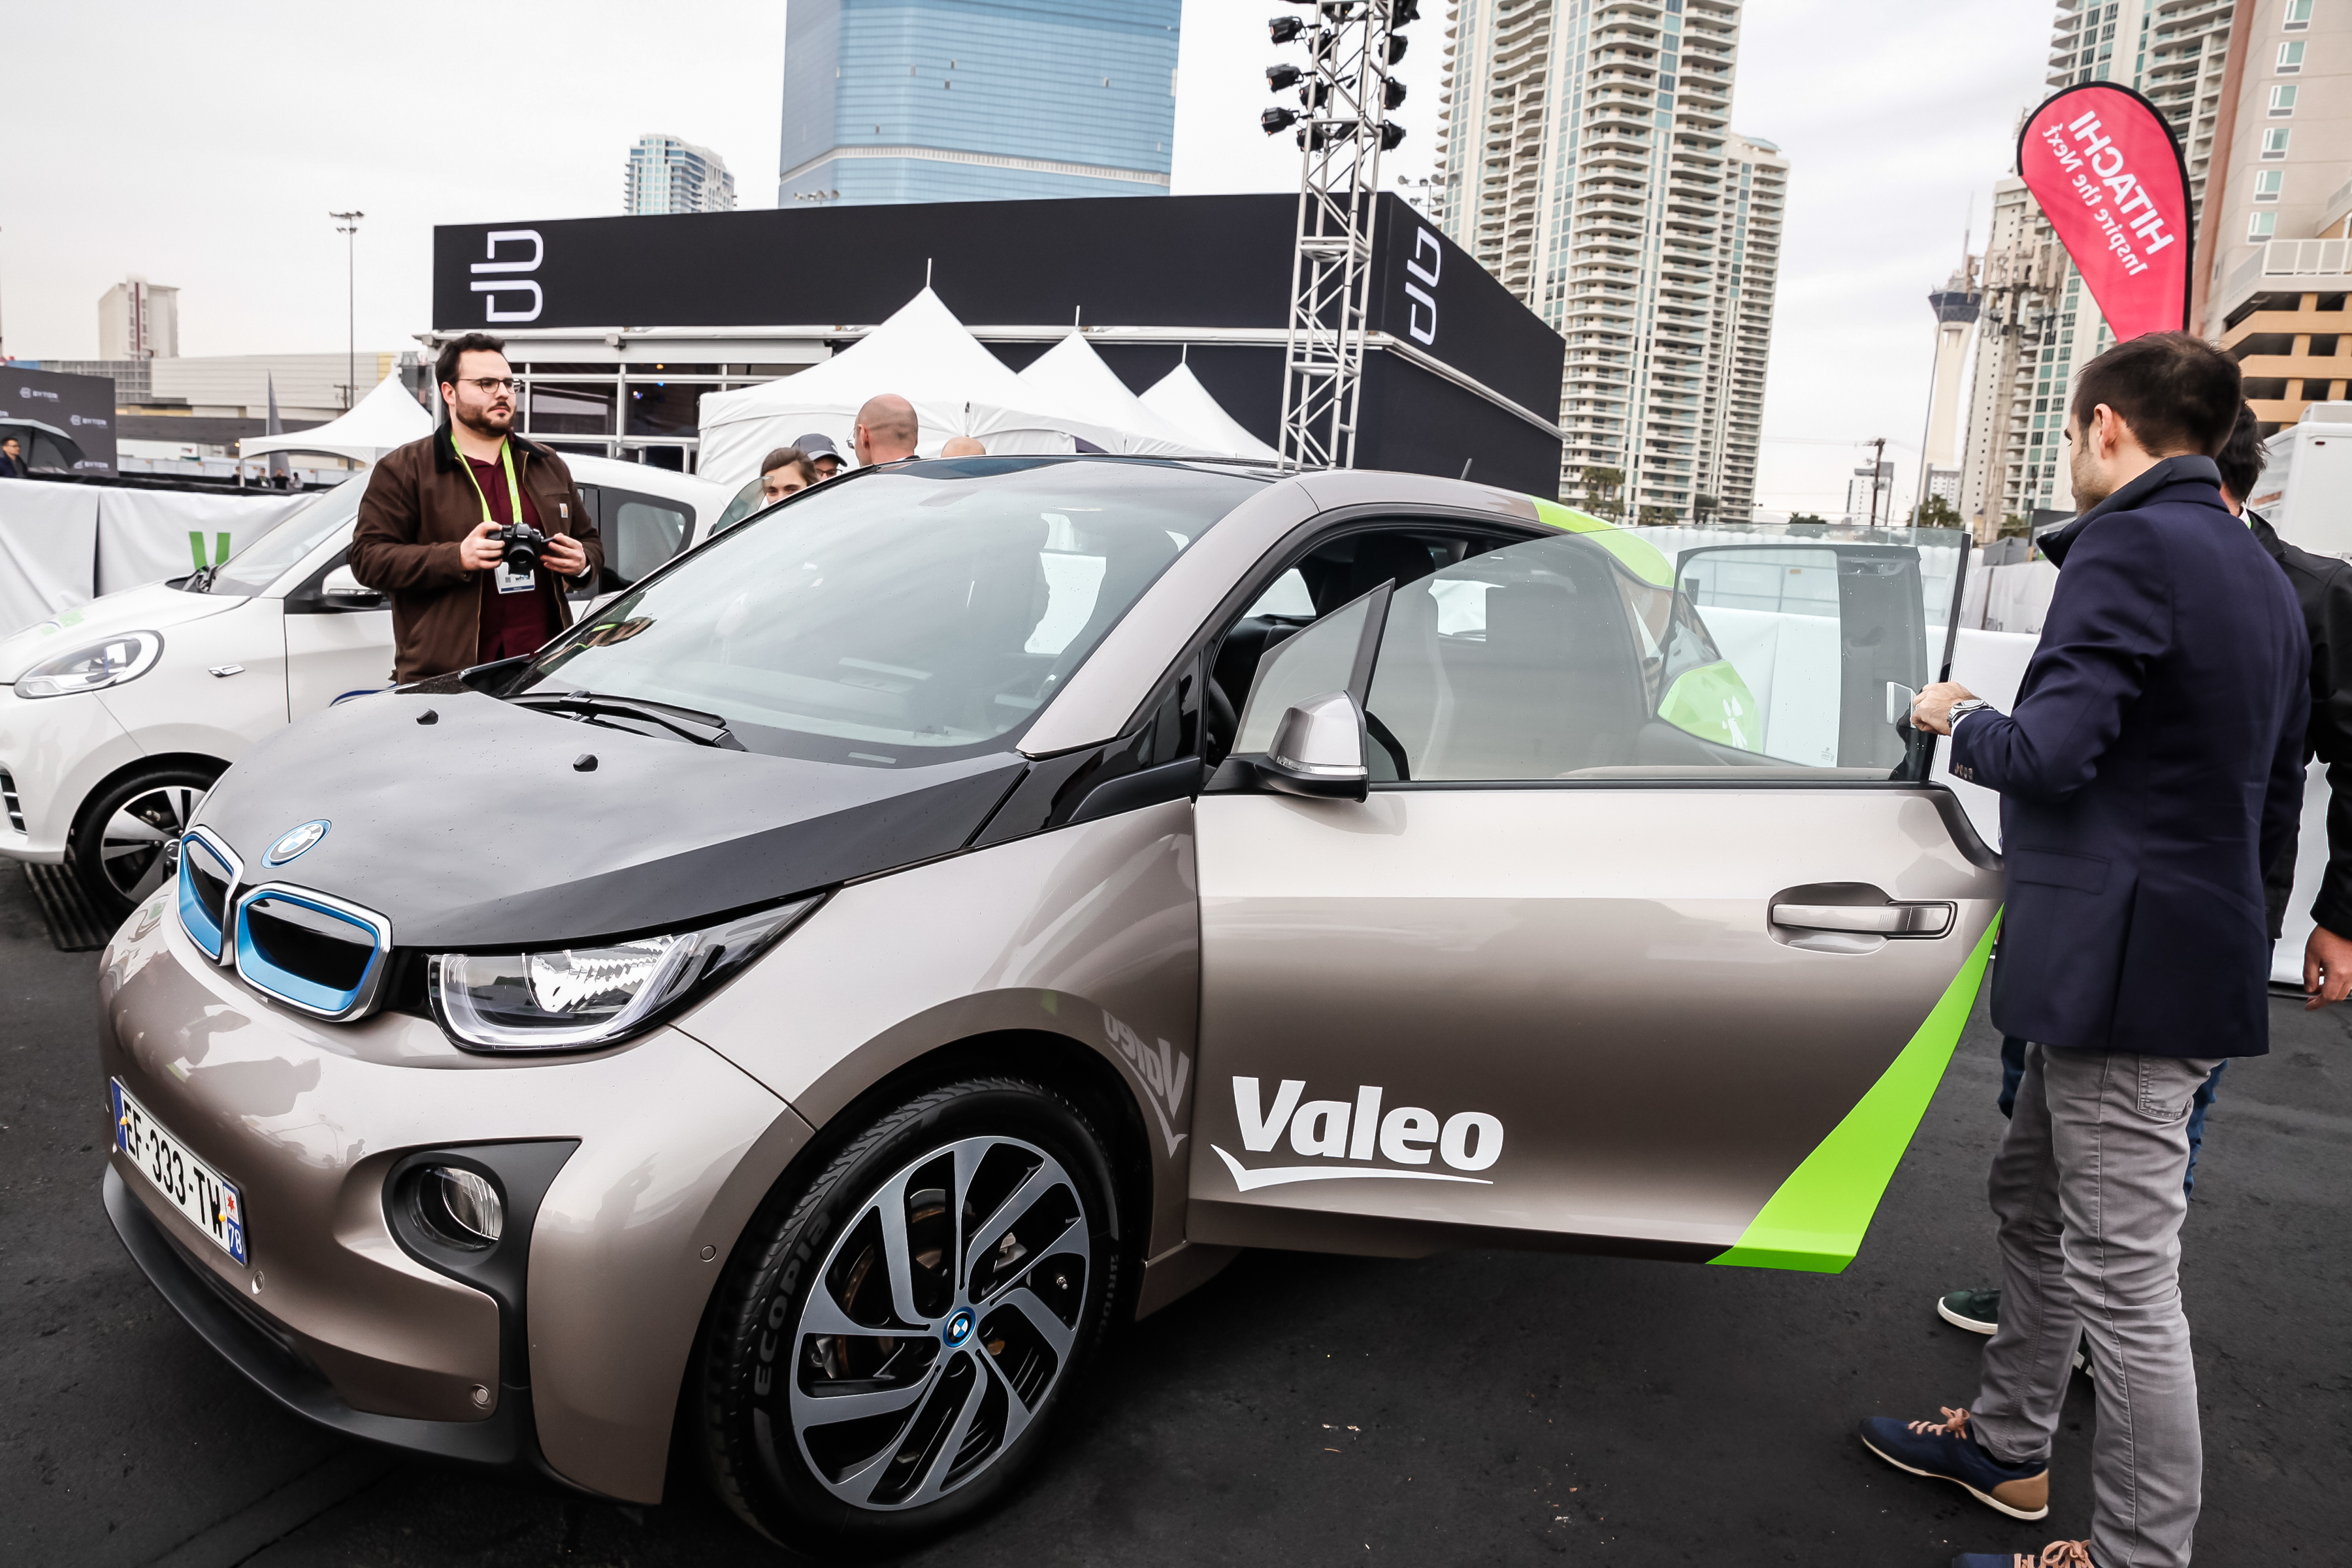 Valeo car exposed at CES 2018